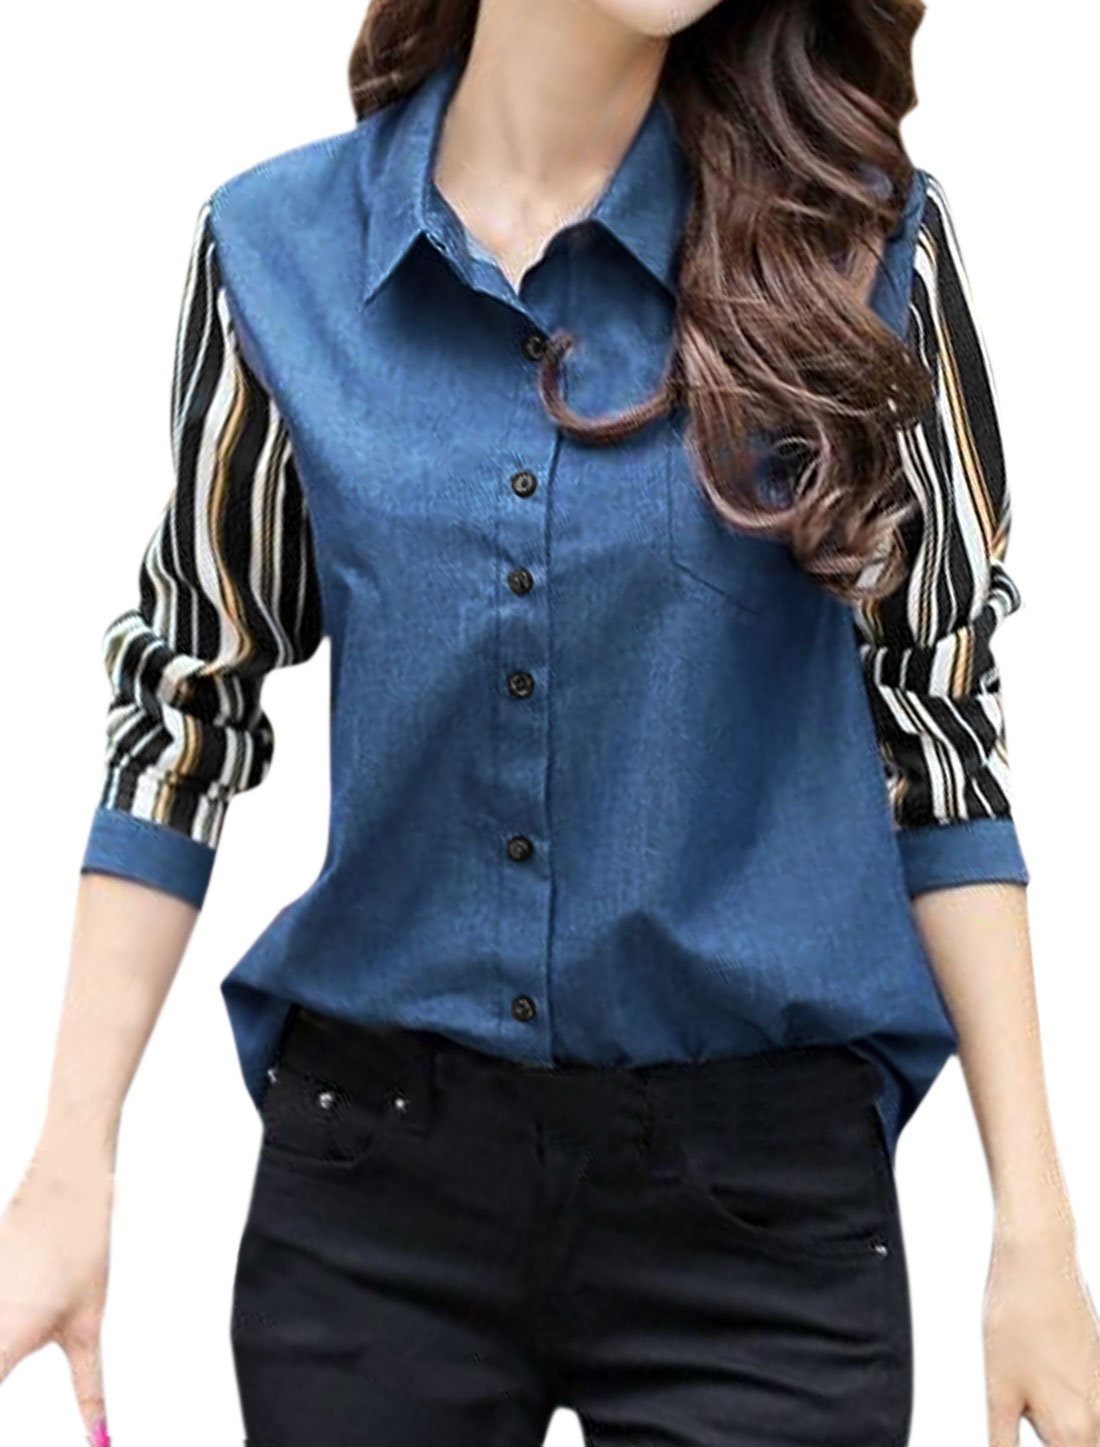 Women Point Collar Stripes Panel Design Tunic Jean Shirt Blue S